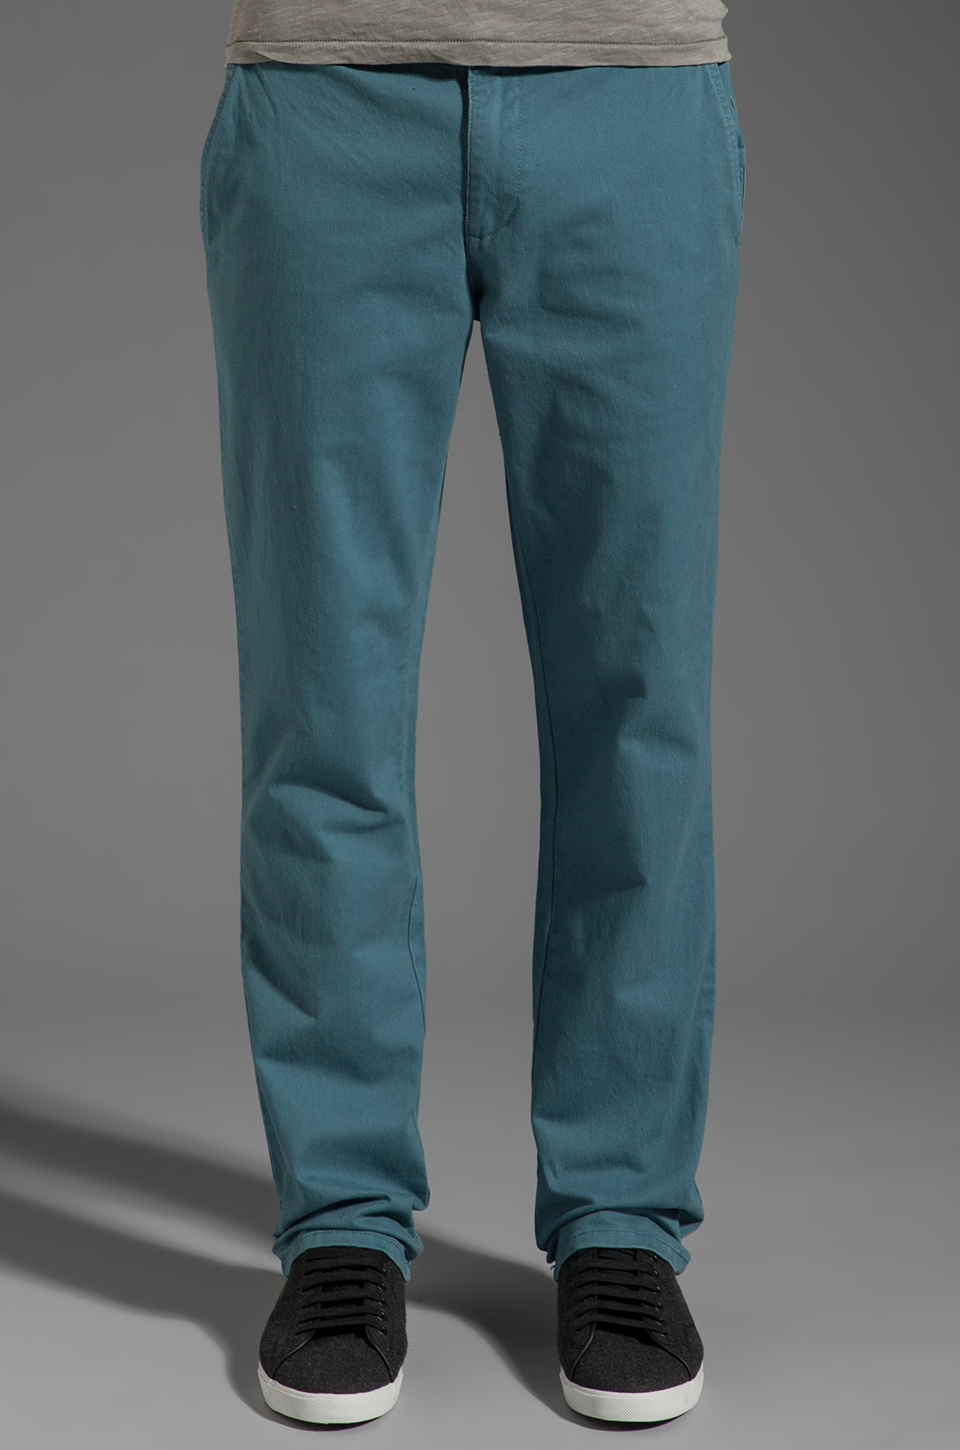 RVCA All Time Chino Pant in Aegean Blue